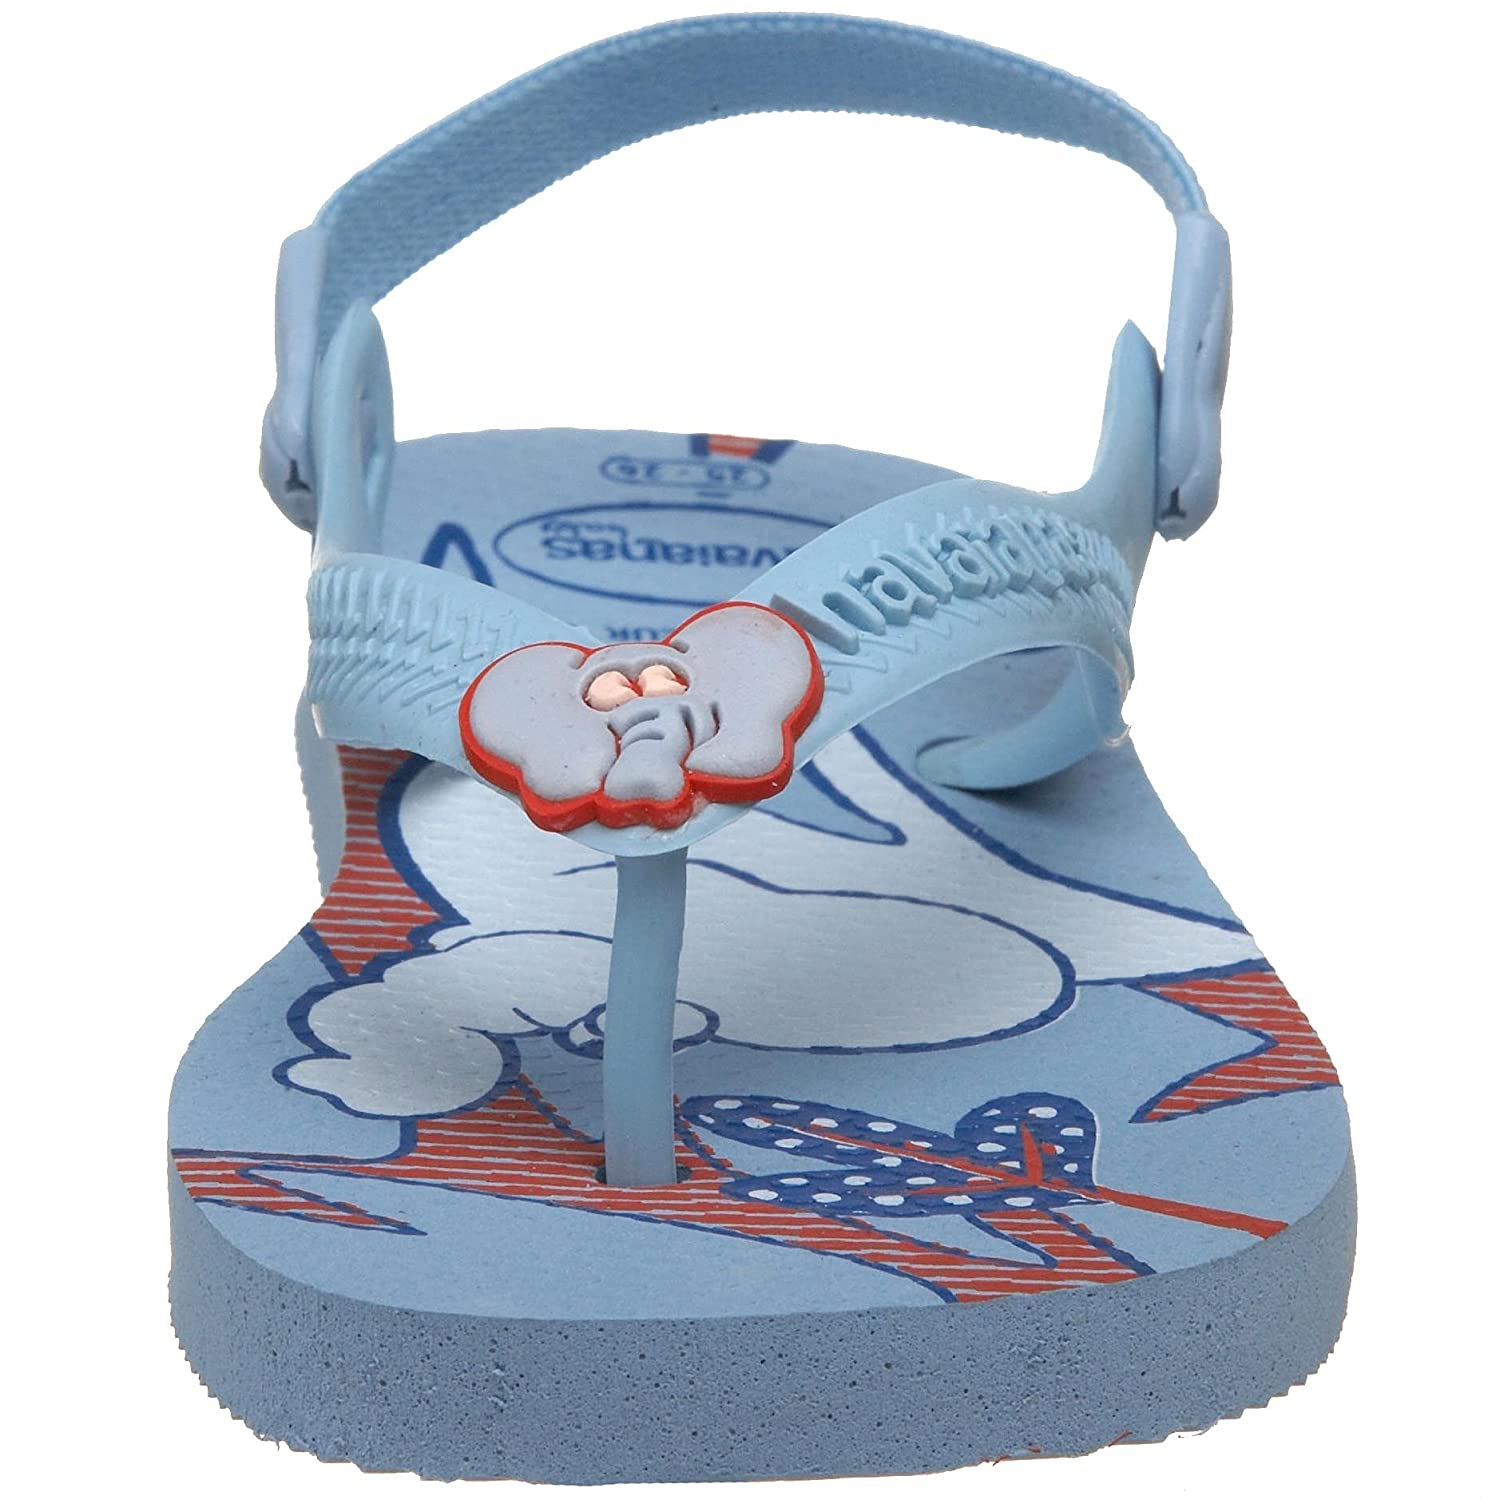 Havaianas Kids Flip Flop Sandals Infant//Toddler